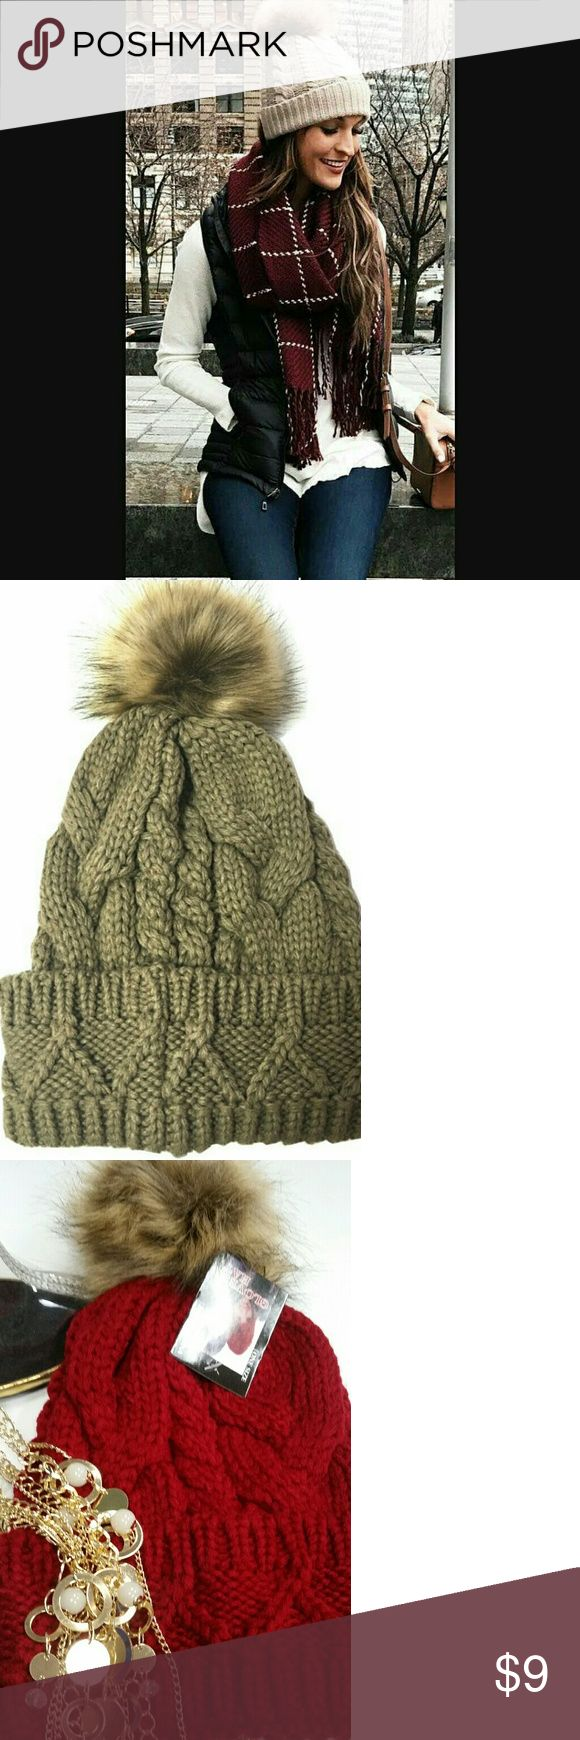 New puff Beanie New cable knit slouchy Puff beanies One size  Snug fit Cold weather ready♡ none Accessories Hats